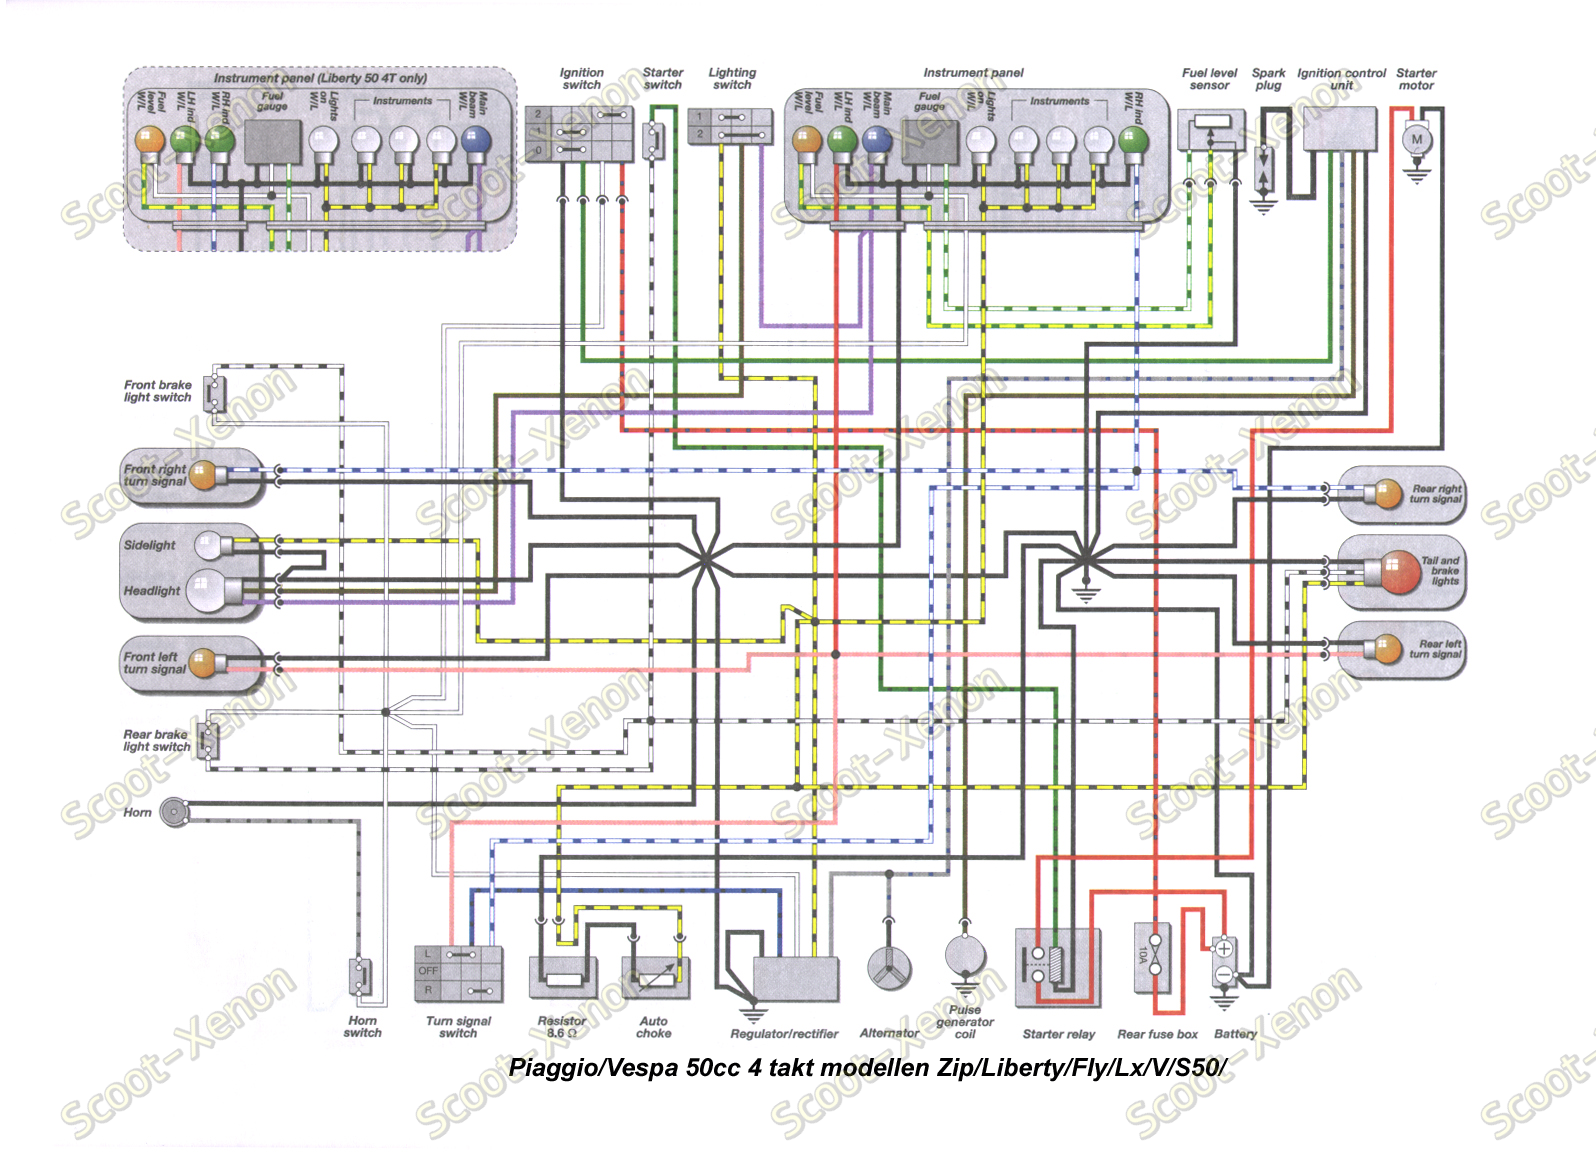 Bms Atv Wiring Diagram as well Tt50sc A1 moreover 260cc 300cc Lh170mm Lh173mn Yp250 Vog Yamaha Linhai likewise China 4 Wheeler Wiring Diagram together with Watch. on 50cc atv wiring diagram